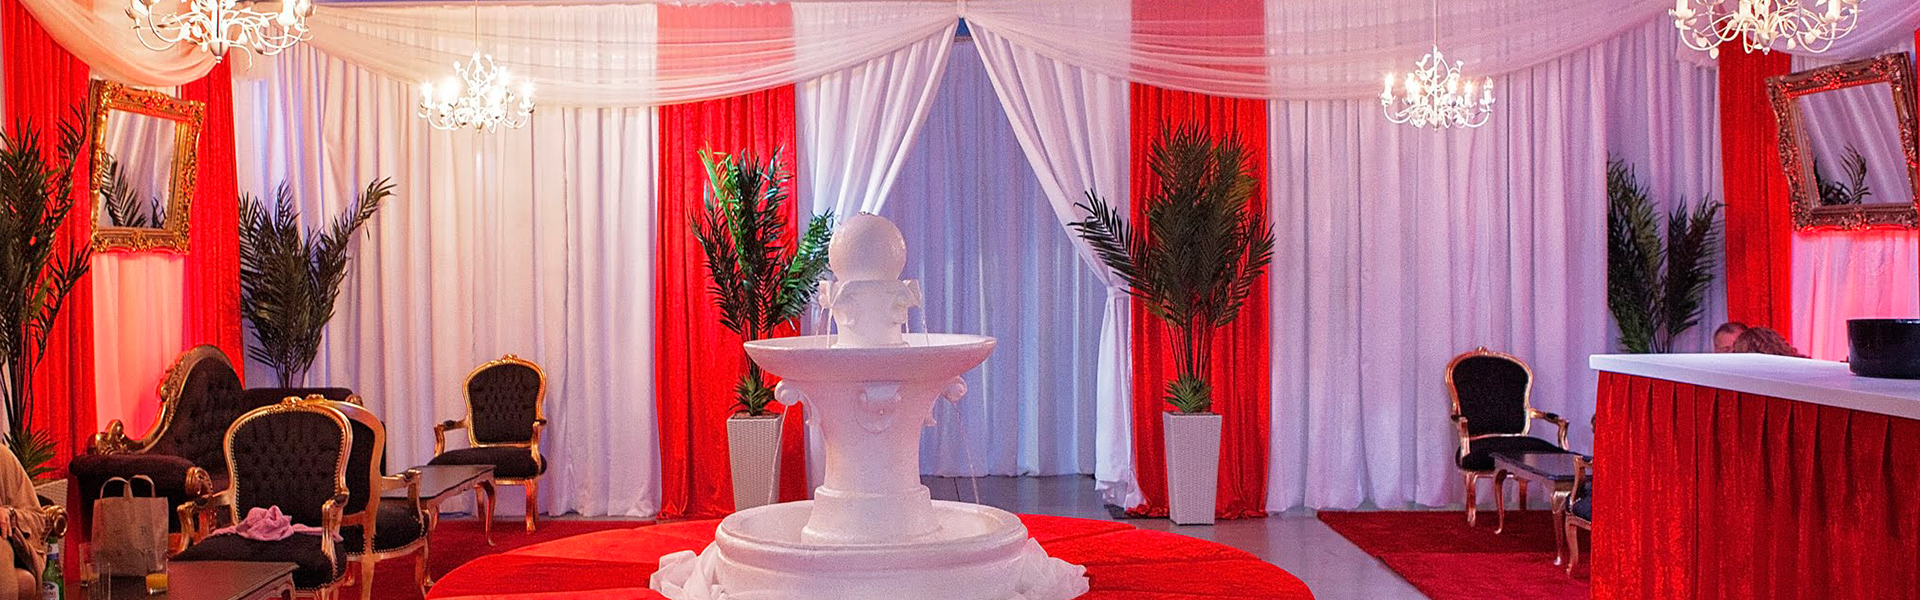 More Weddings white and red wall drapes